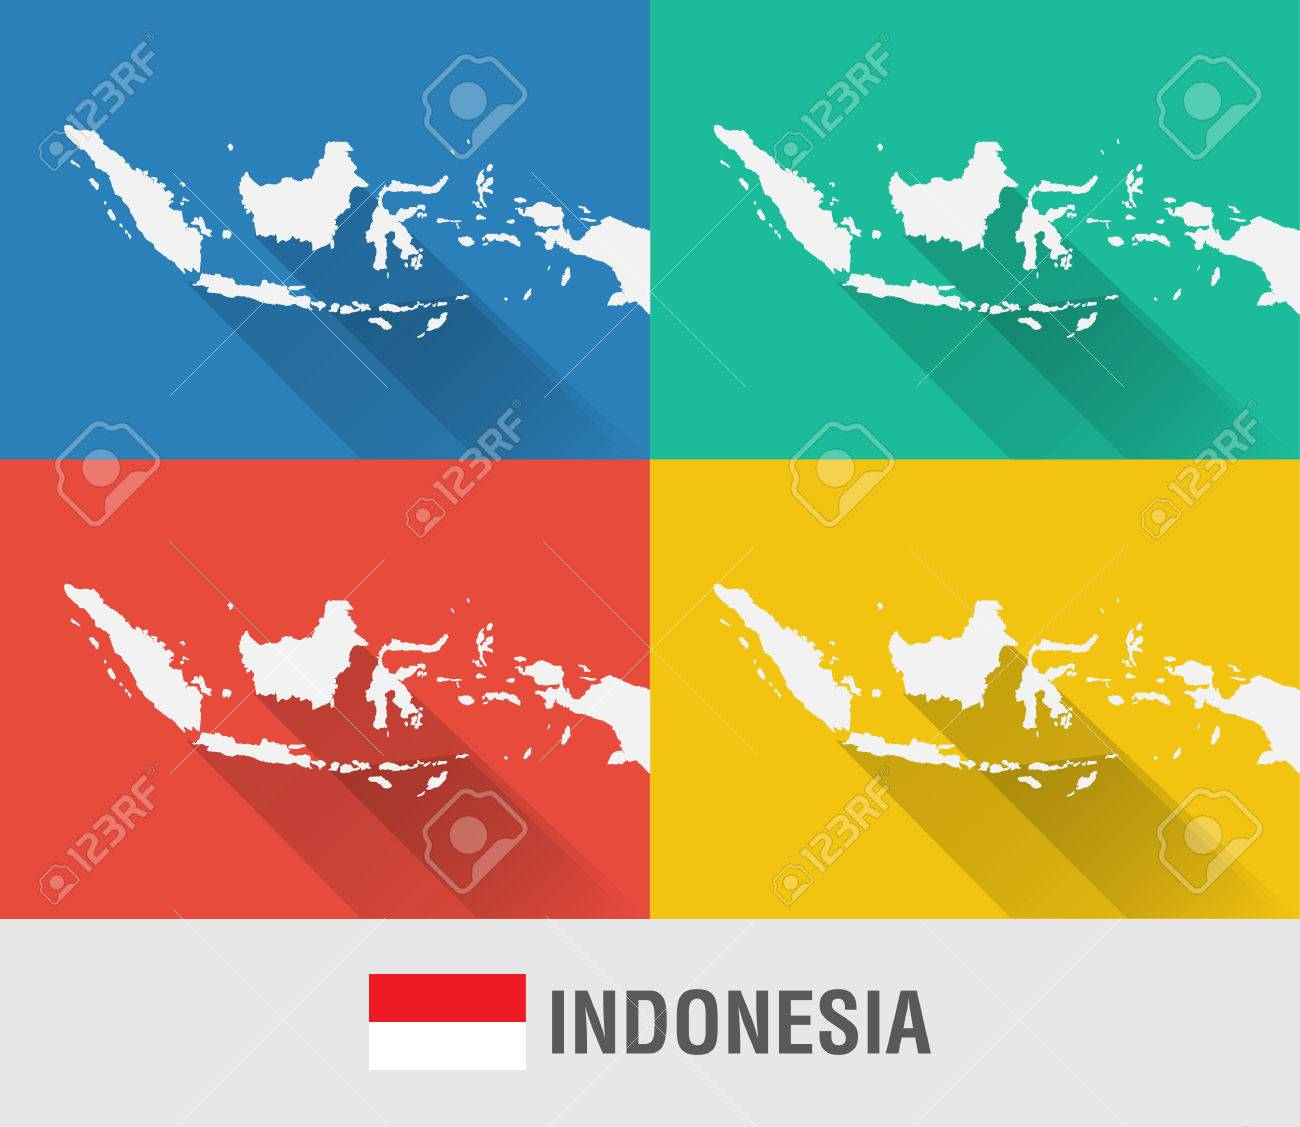 Indonesia world map in flat style with 4 colors modern map design indonesia world map in flat style with 4 colors modern map design stock vector gumiabroncs Gallery